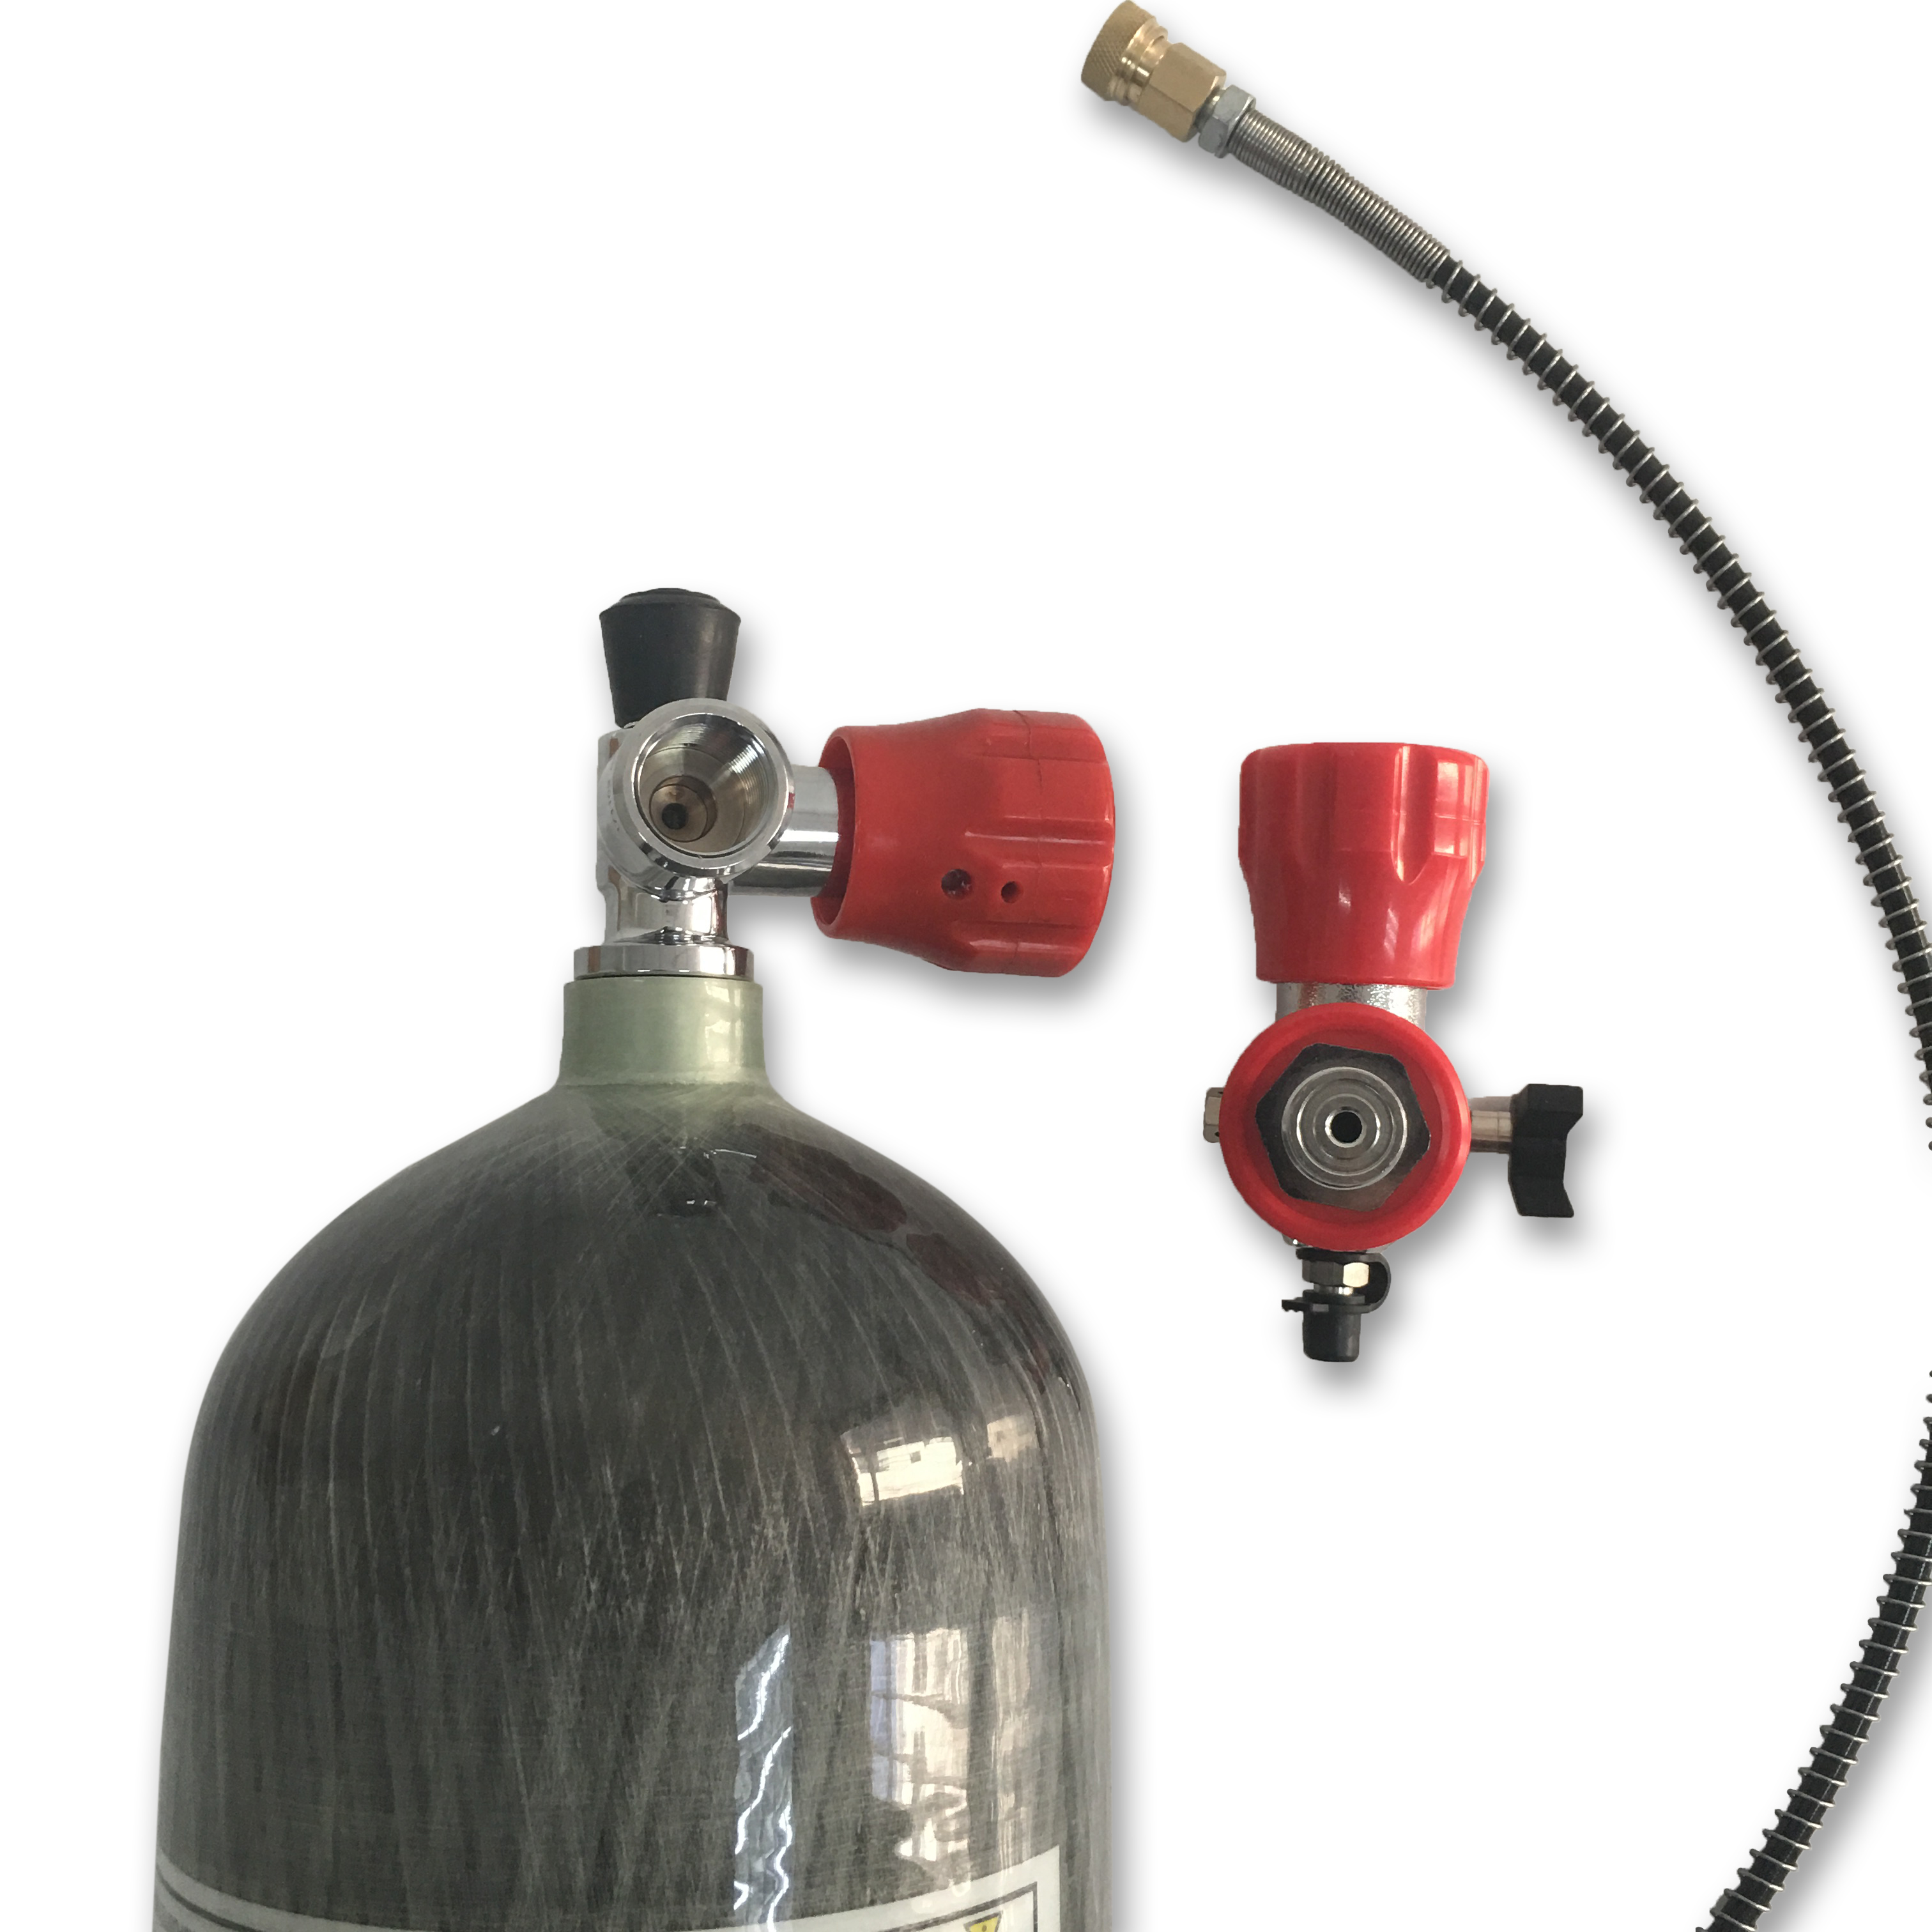 AC168101 6 8L Paintball Tank PCP Air Refile Composited Carbon Fiber Cylinder for with Red Valve and Filling Station Acecare in Paintball Accessories from Sports Entertainment